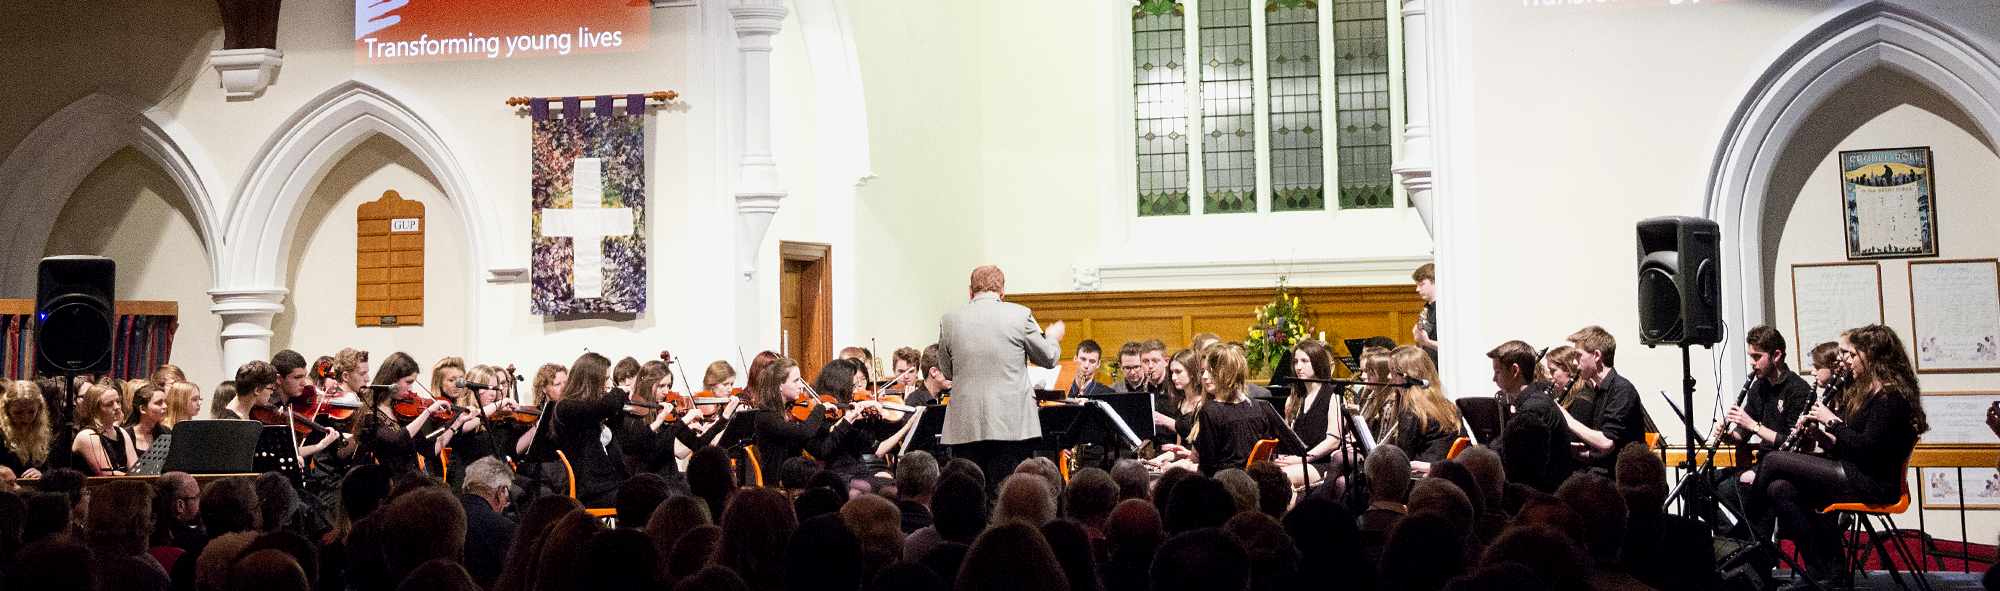 The Dan Eley Foundation Fundraising fundraising concert with Godalming College music students